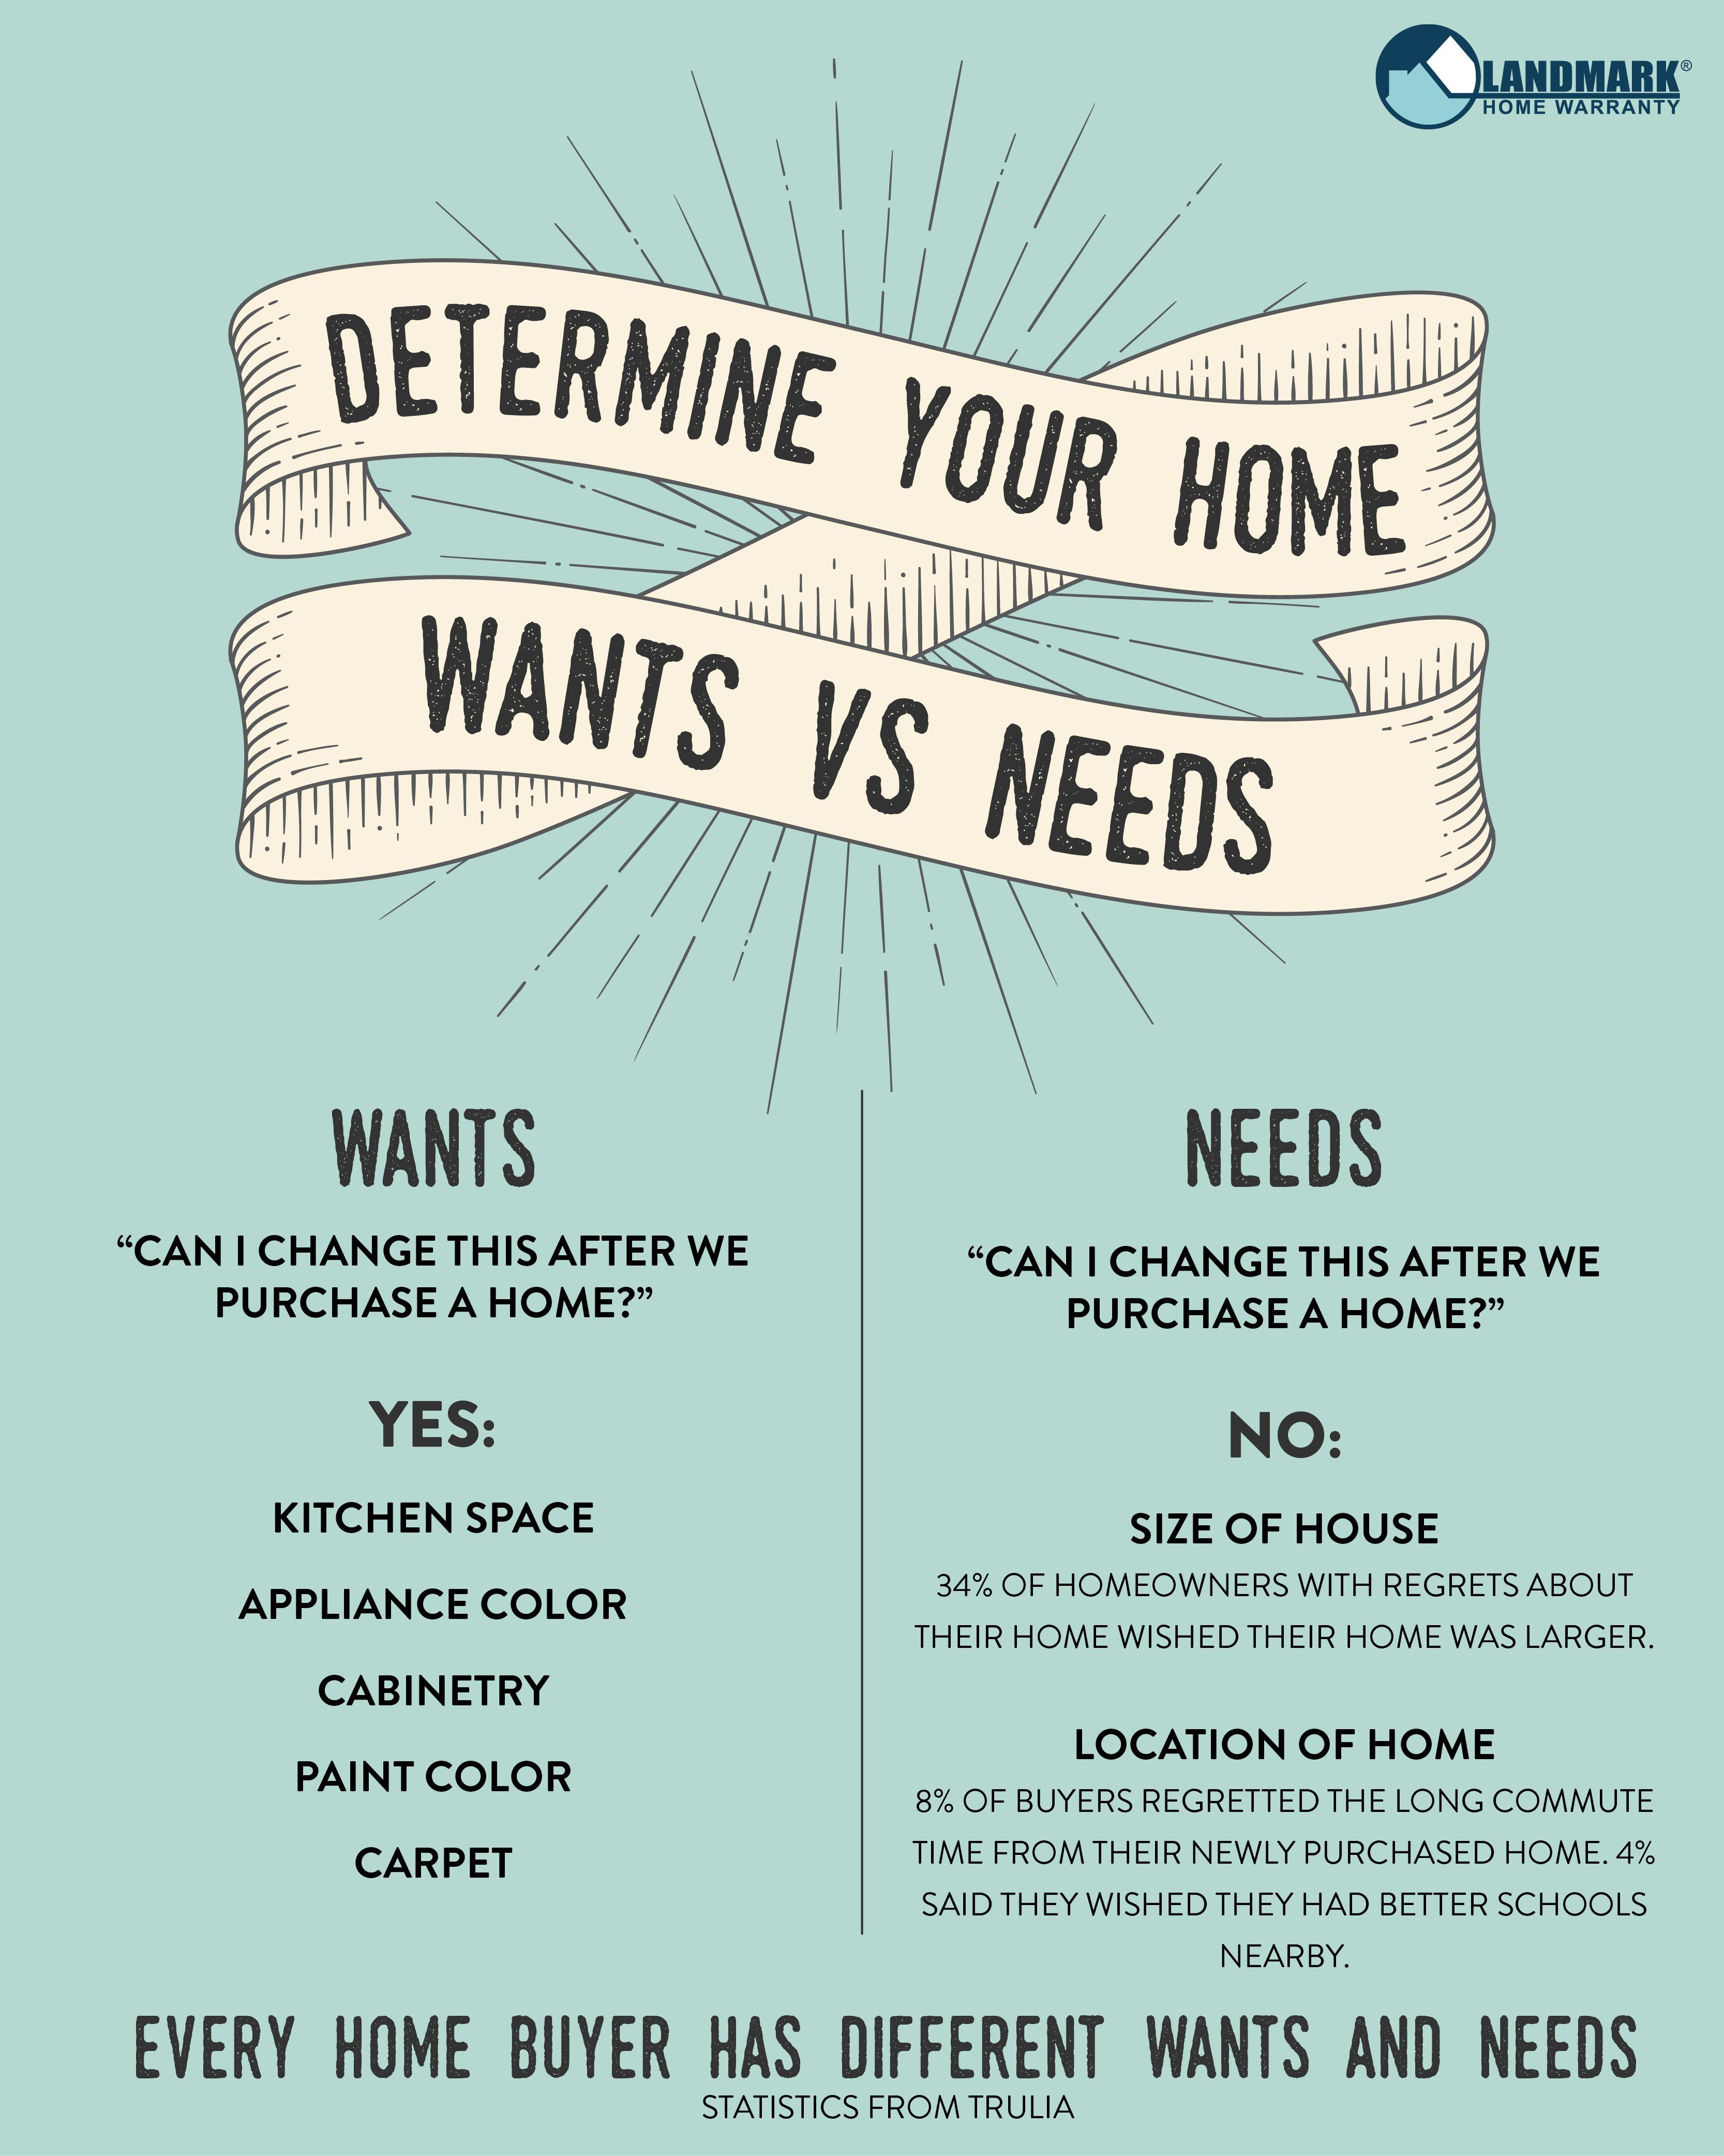 Make Sure To Determine What Your Wants And Needs Are In A Home Before Searching Some Needs May Be The Size Of The Home Home Buying Stuff To Buy Home Warranty